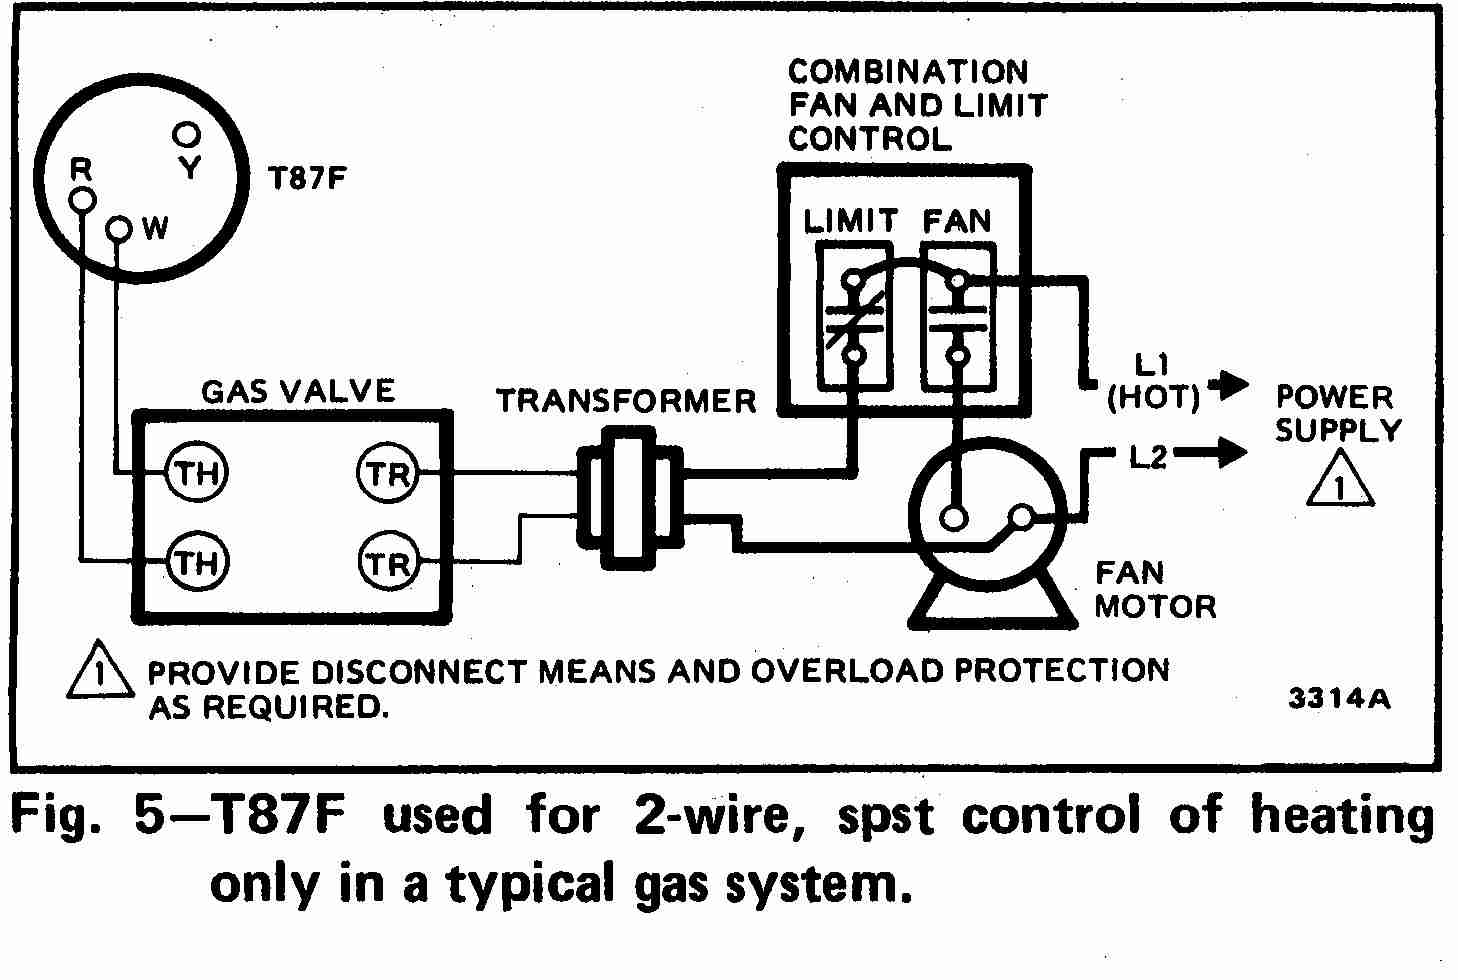 york gas valve wiring diagram schematics online 2 wire furnace wiring wiring diagram